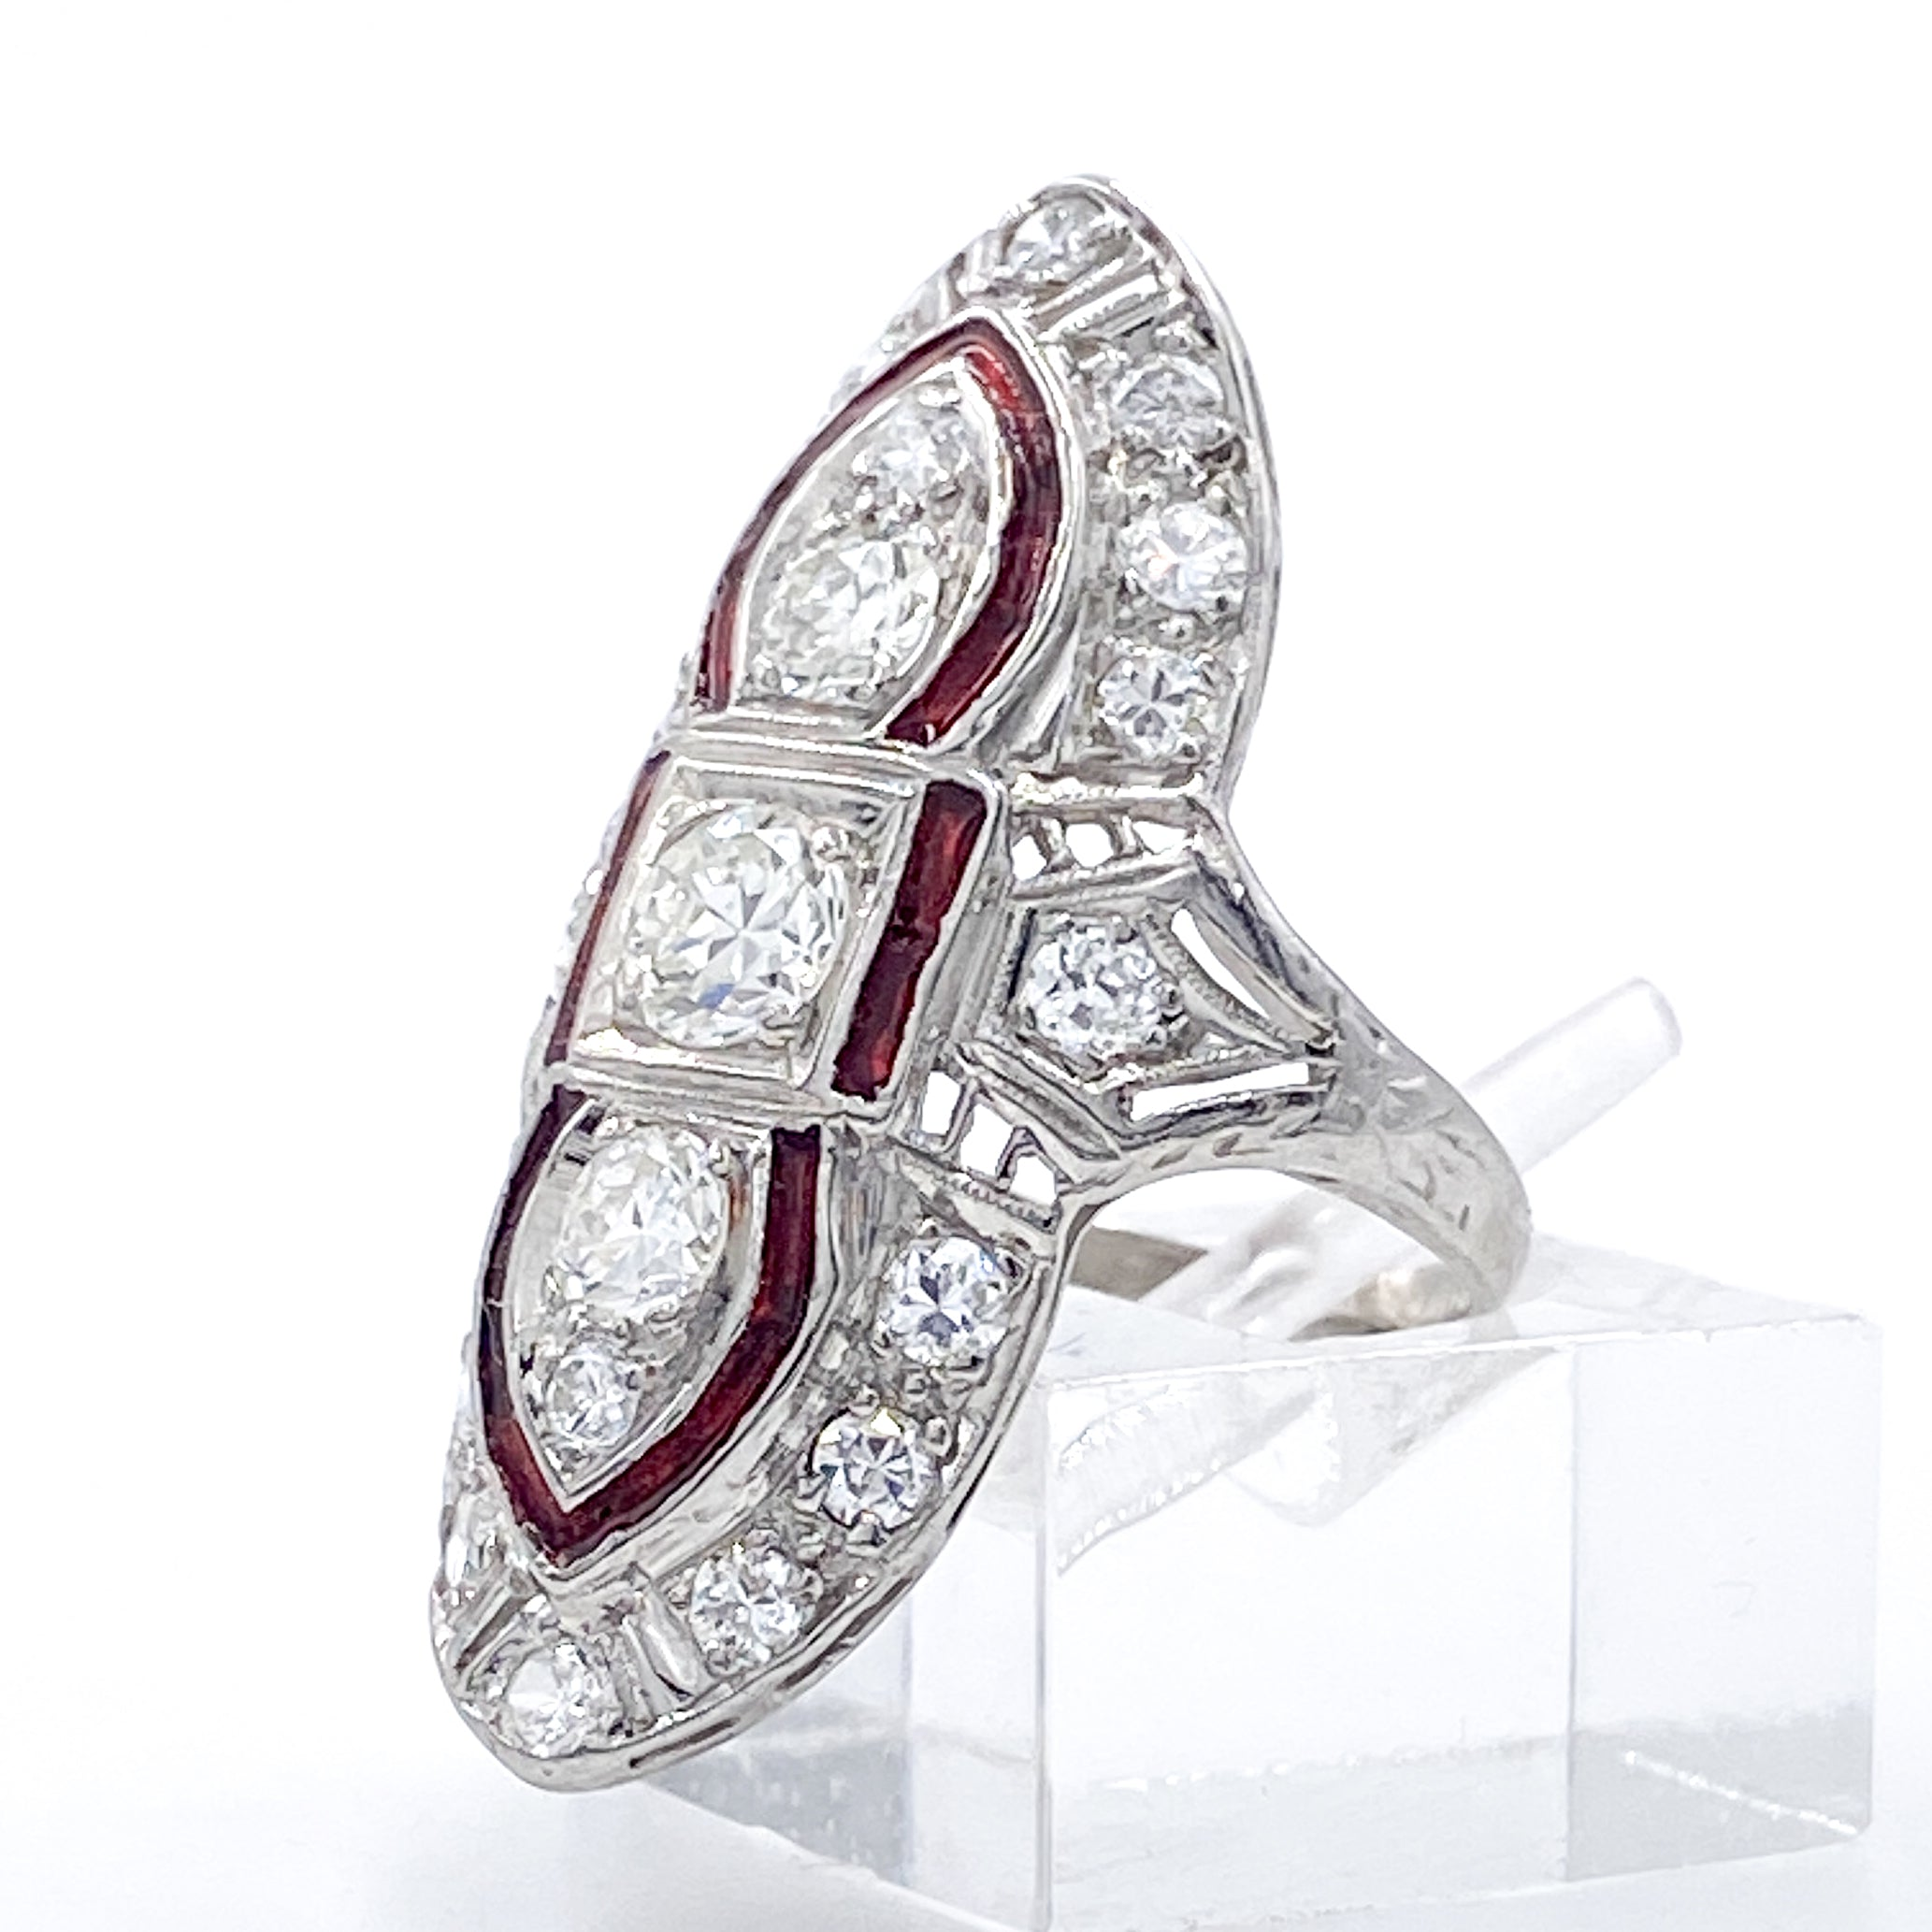 Gorgeous Art Deco Vertical North South 1.5 Carat Diamond Ring with Ruby Red Enamel in Platinum